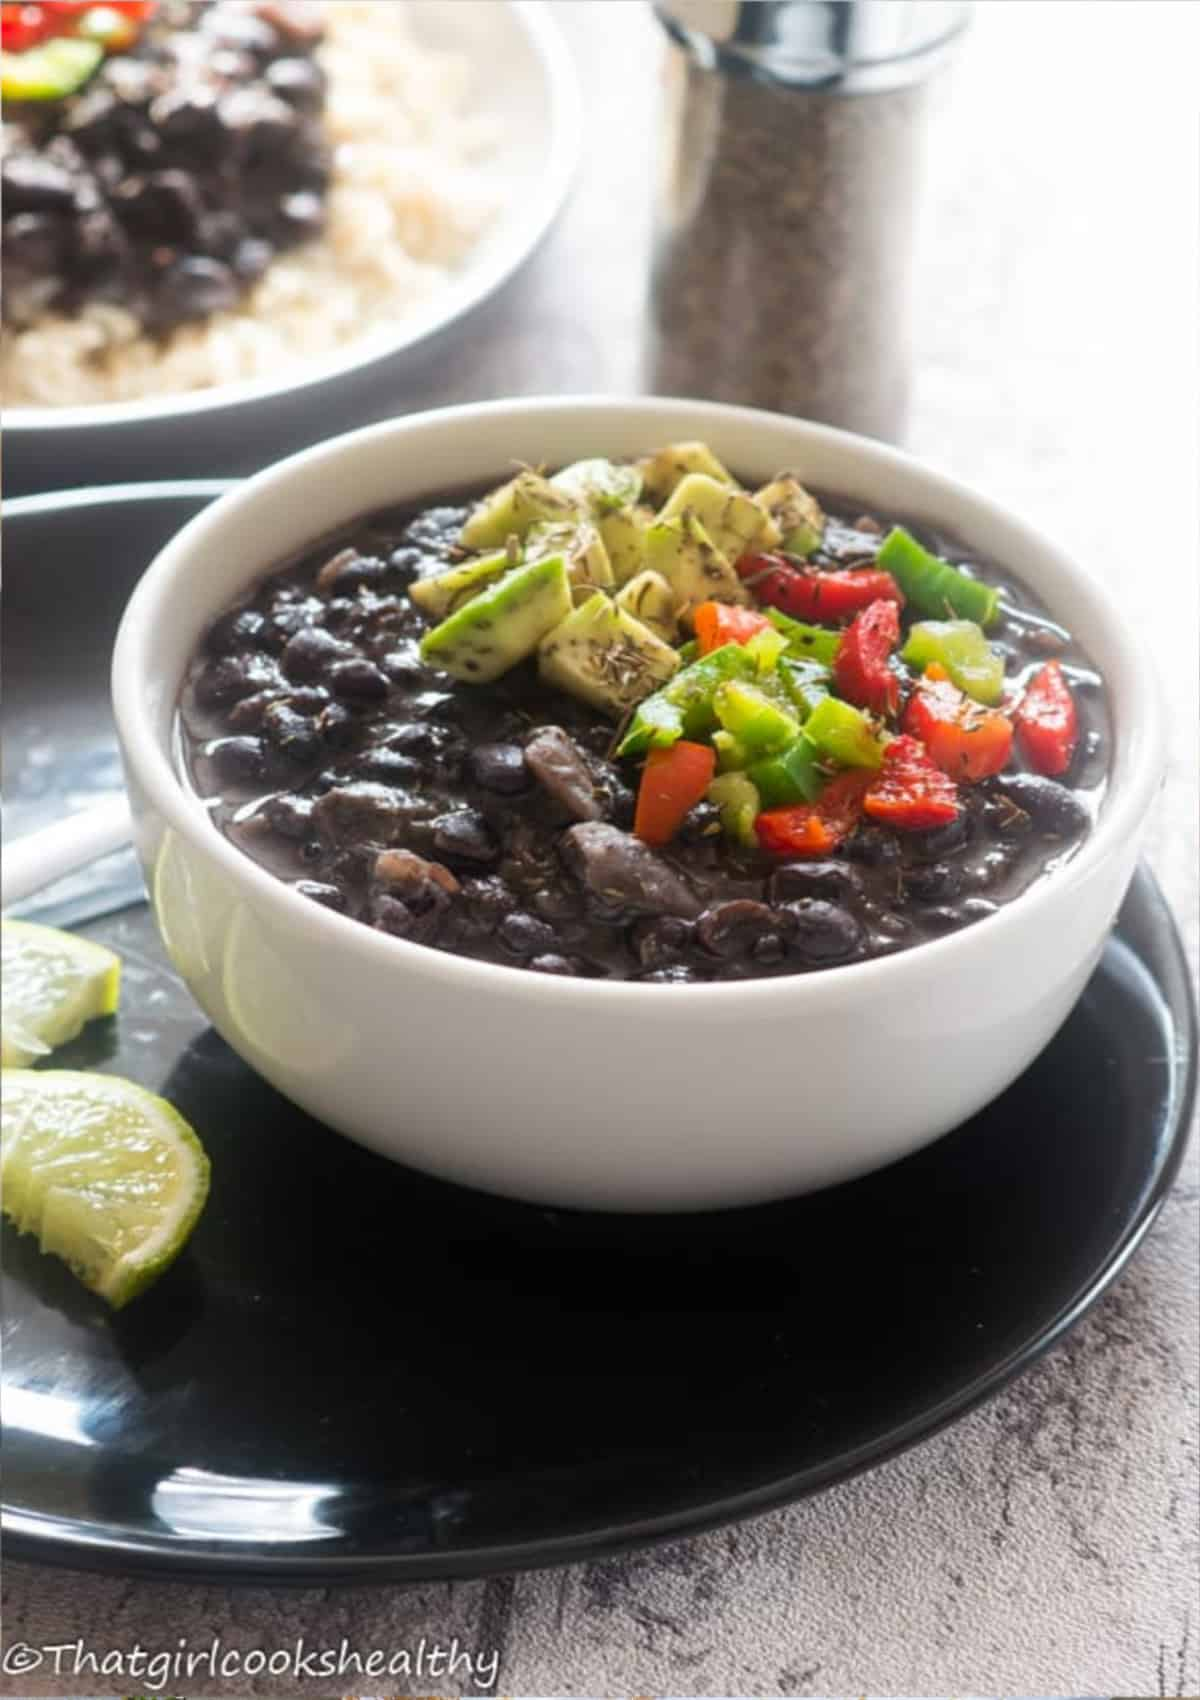 Black beans with a topping